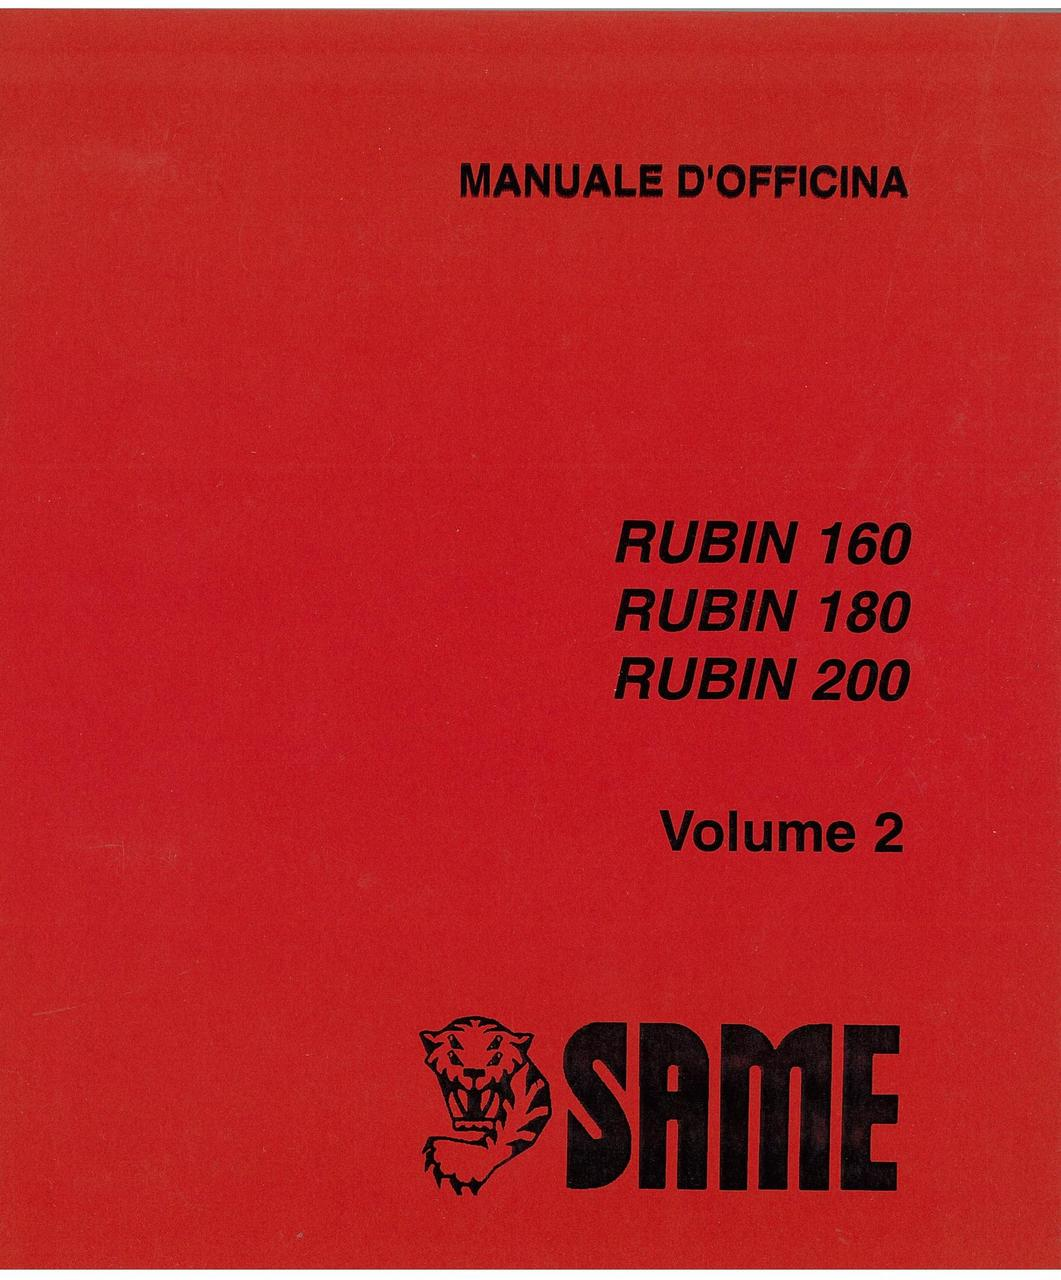 RUBIN 160 - 180 - 200 - VOLUME 2 - Manuale d'officina